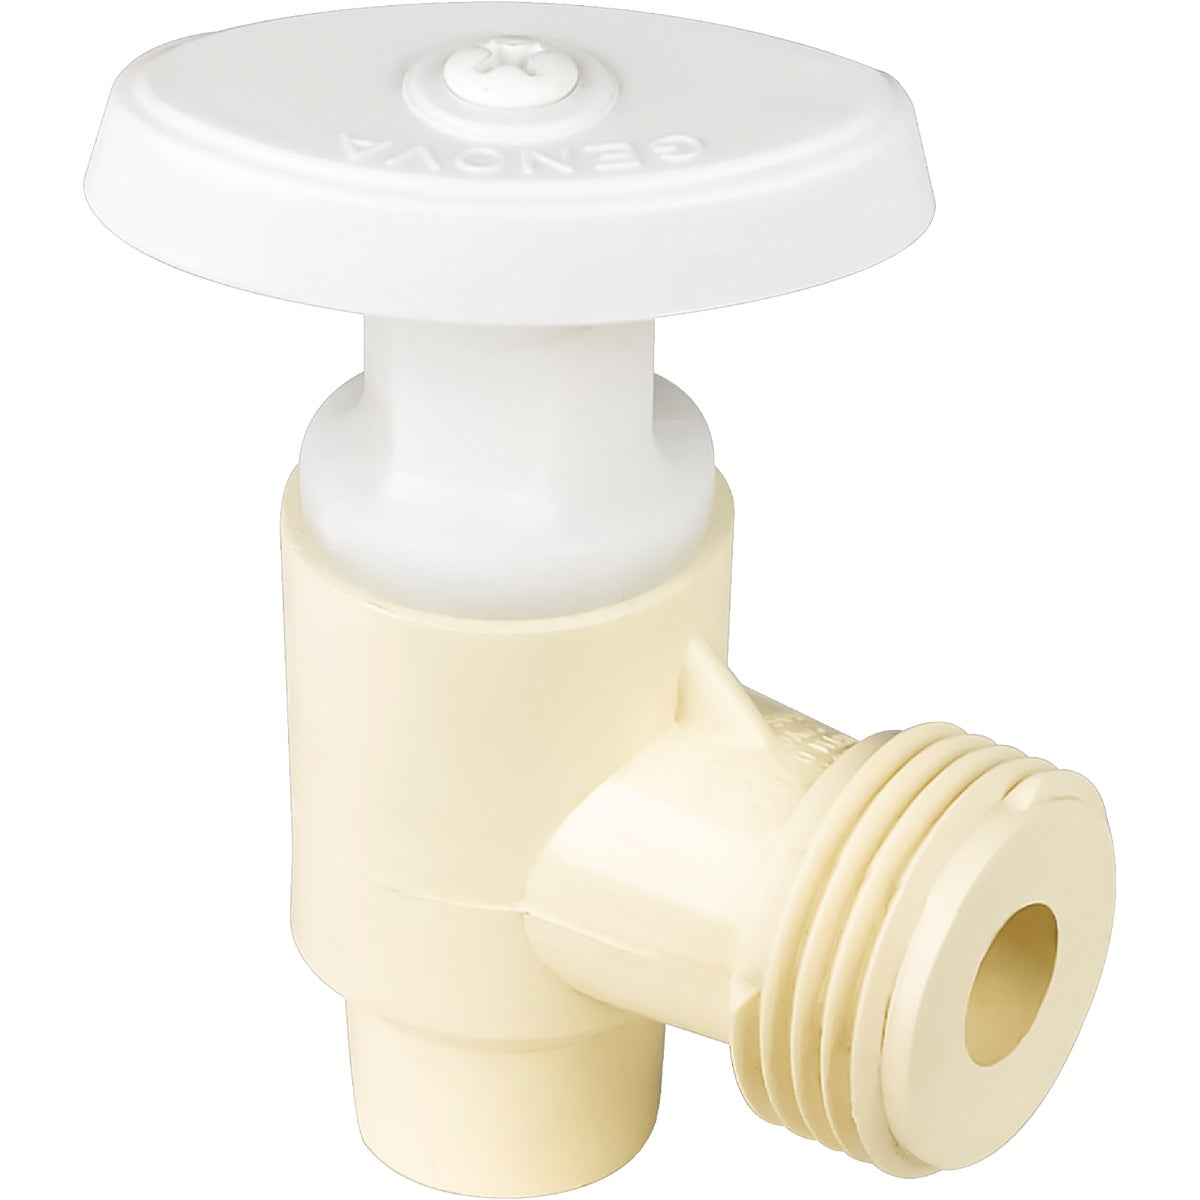 "1/2"" WASHER HOSE VALVE - 53067 by Genova Inc"